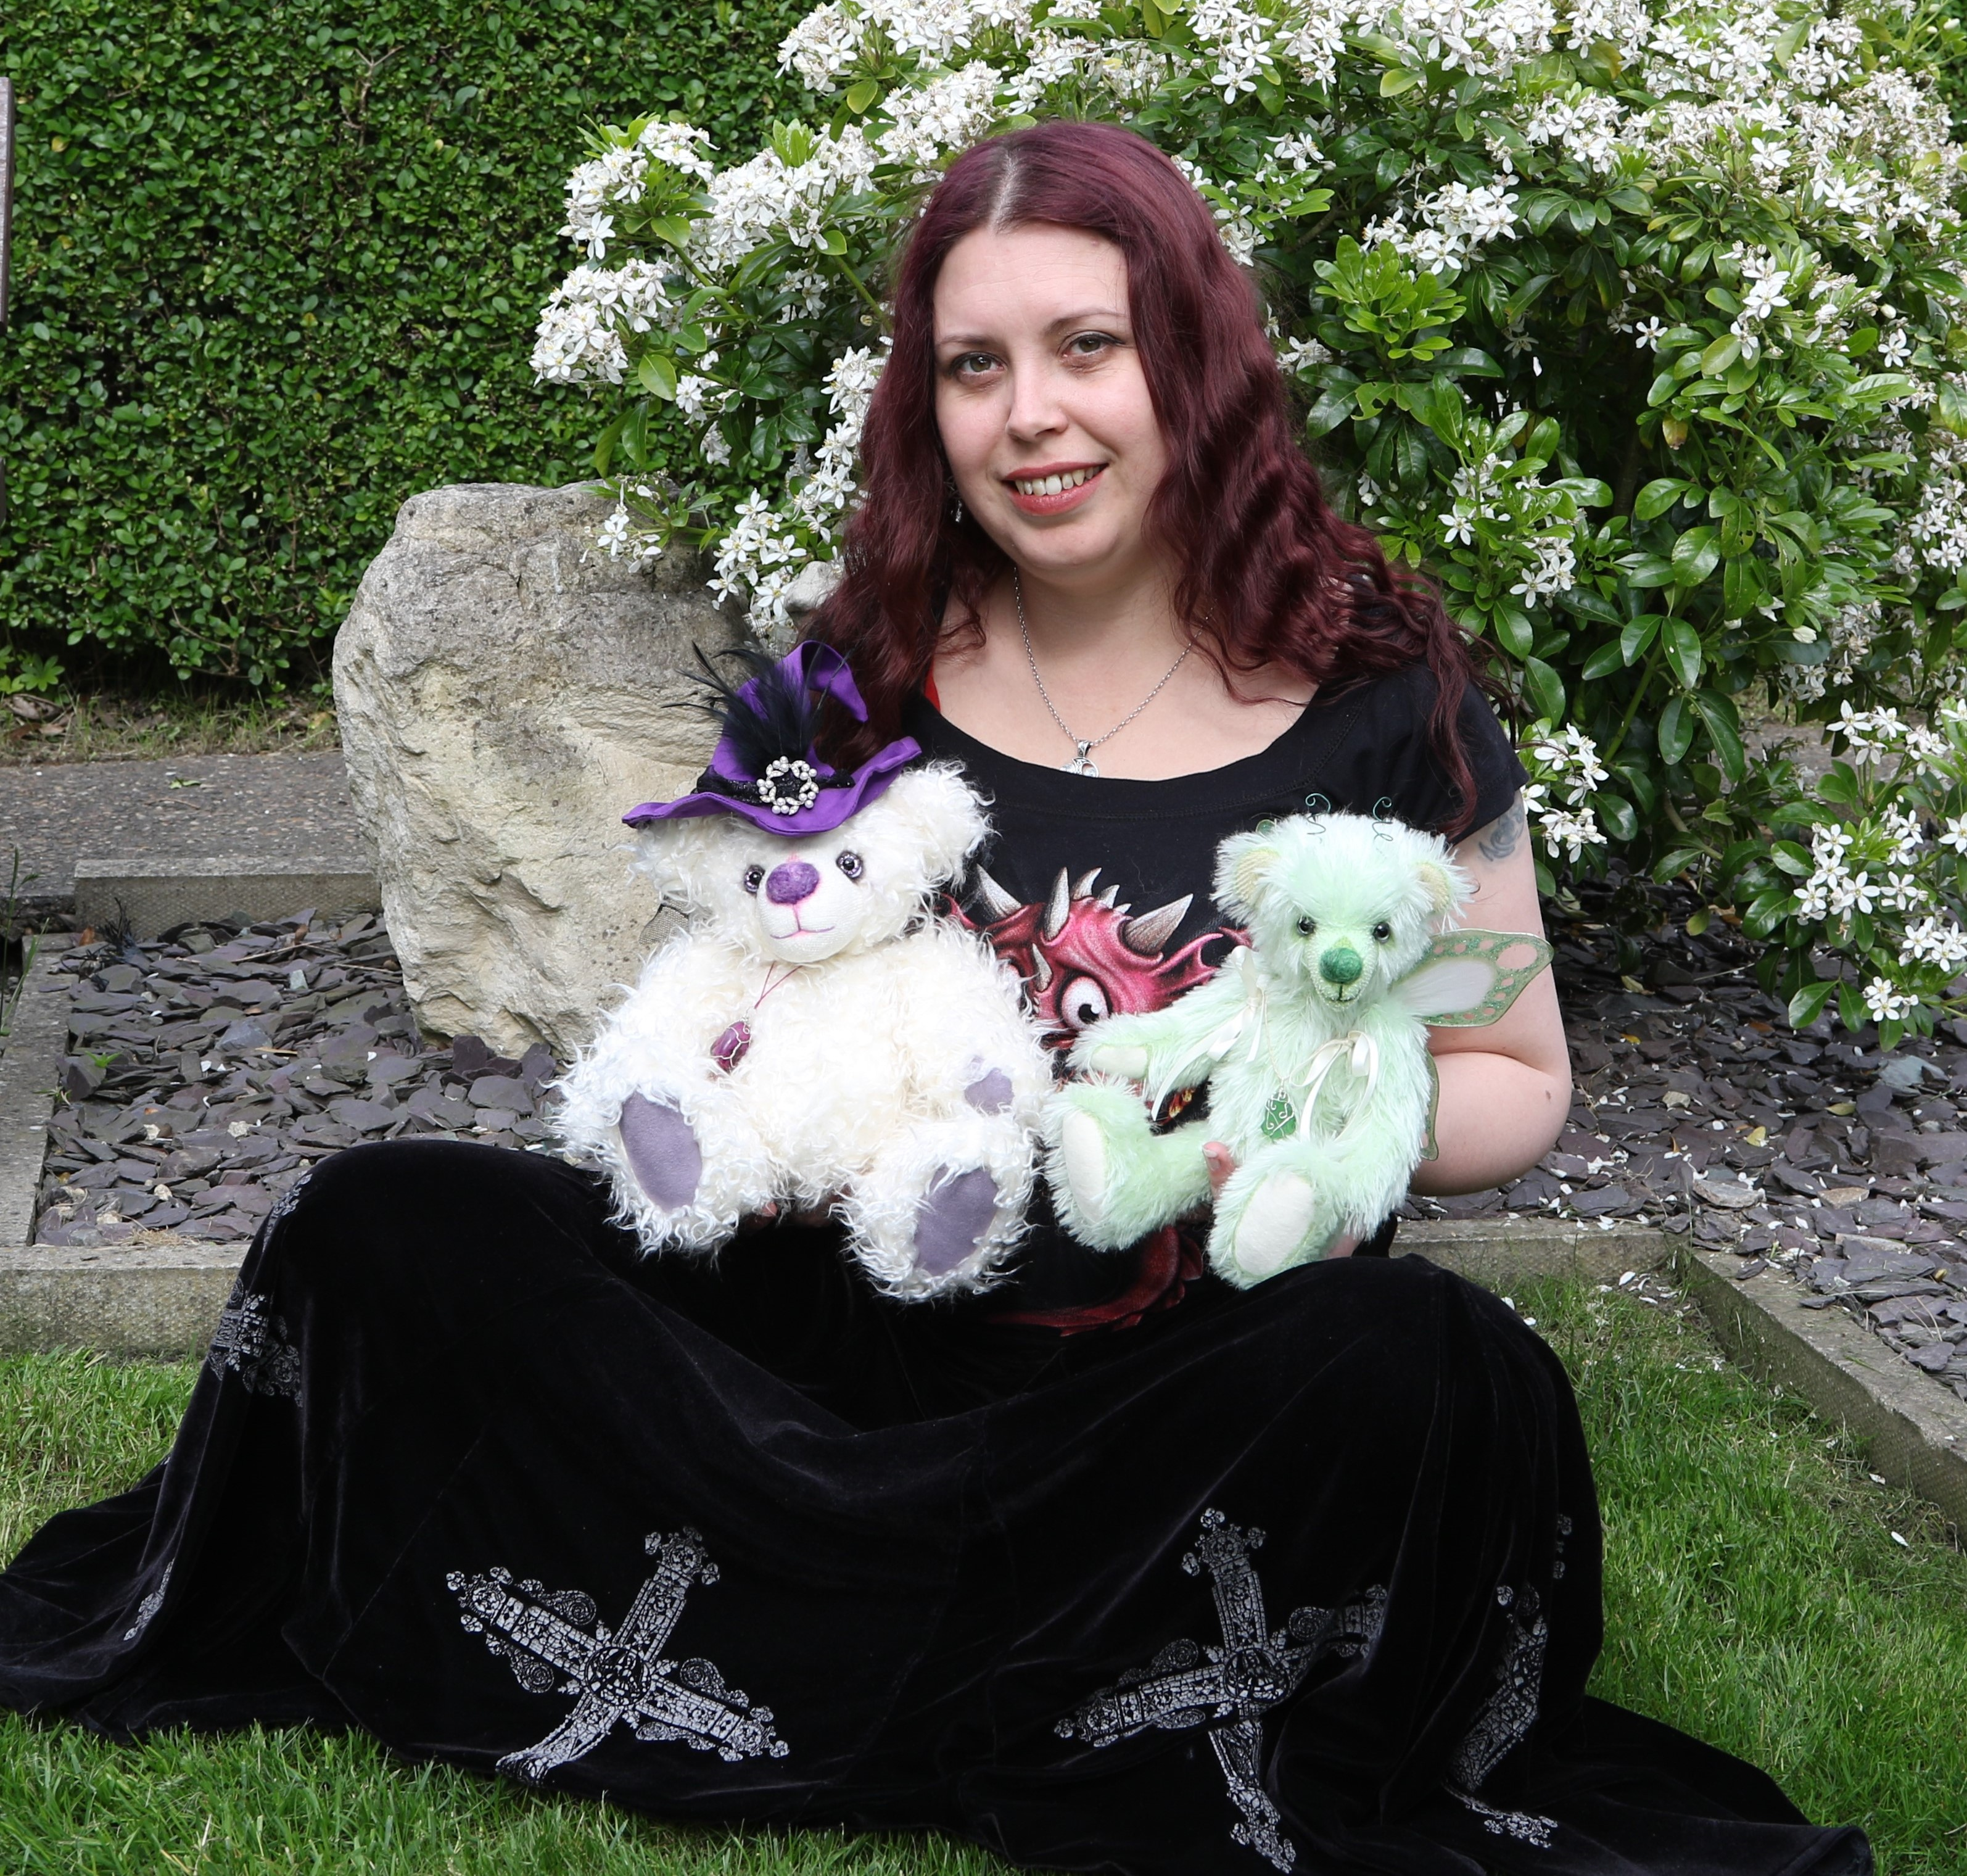 Brierley Bears | about the artist | Kat with bears